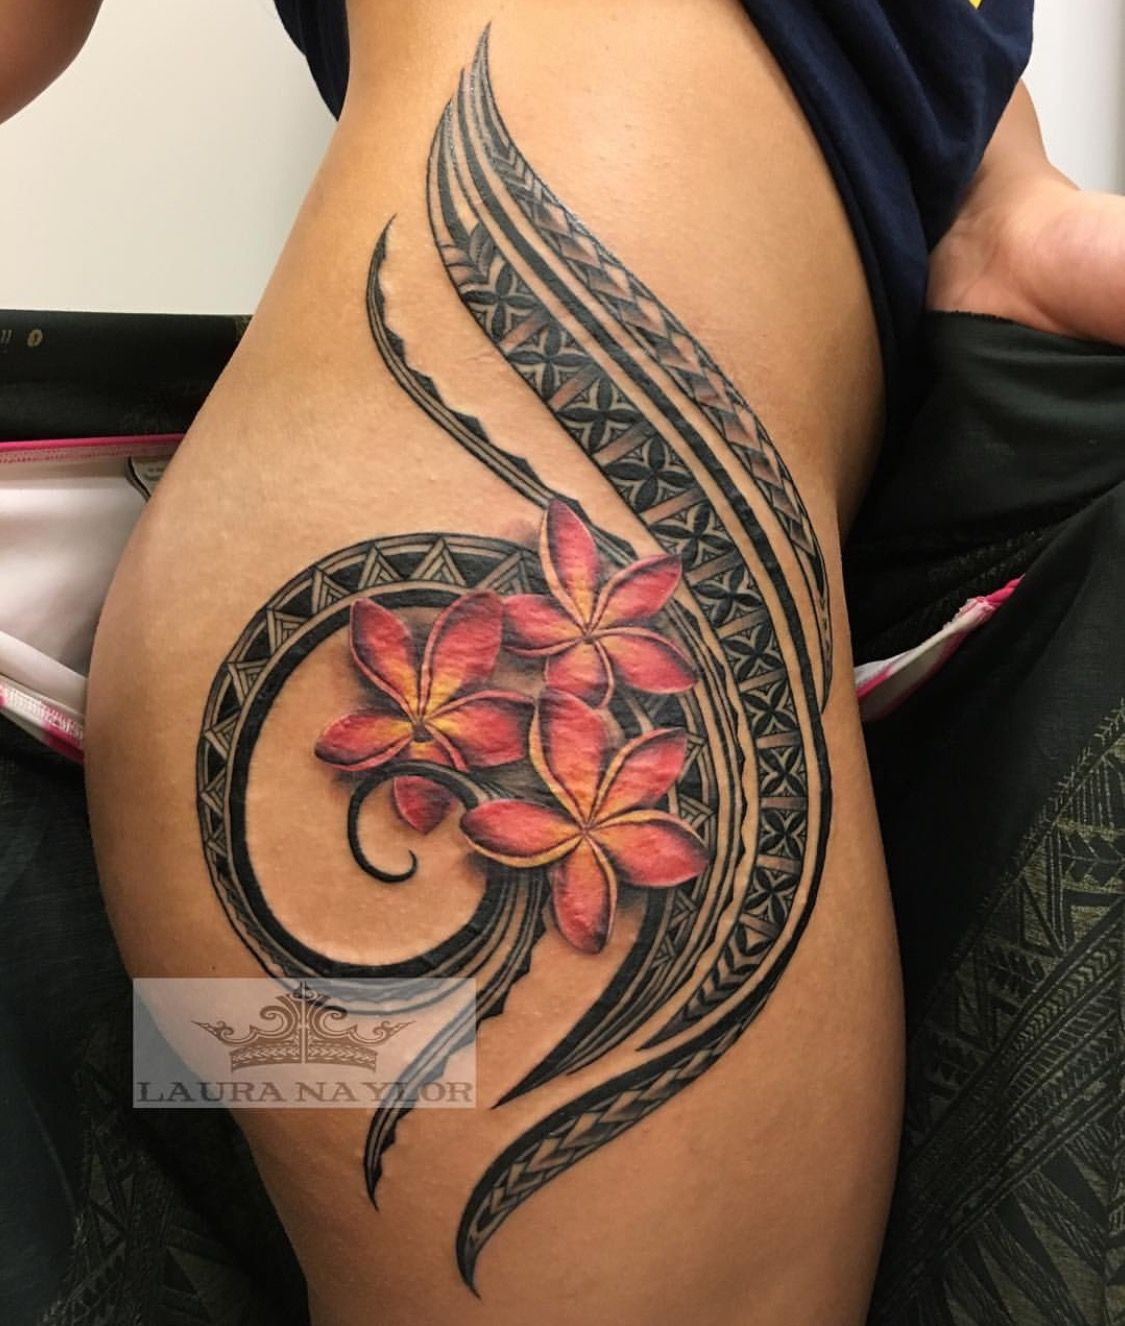 Polynesian tribal tattoo tattoos pinterest tattoos for Hawaiian tattoos for females